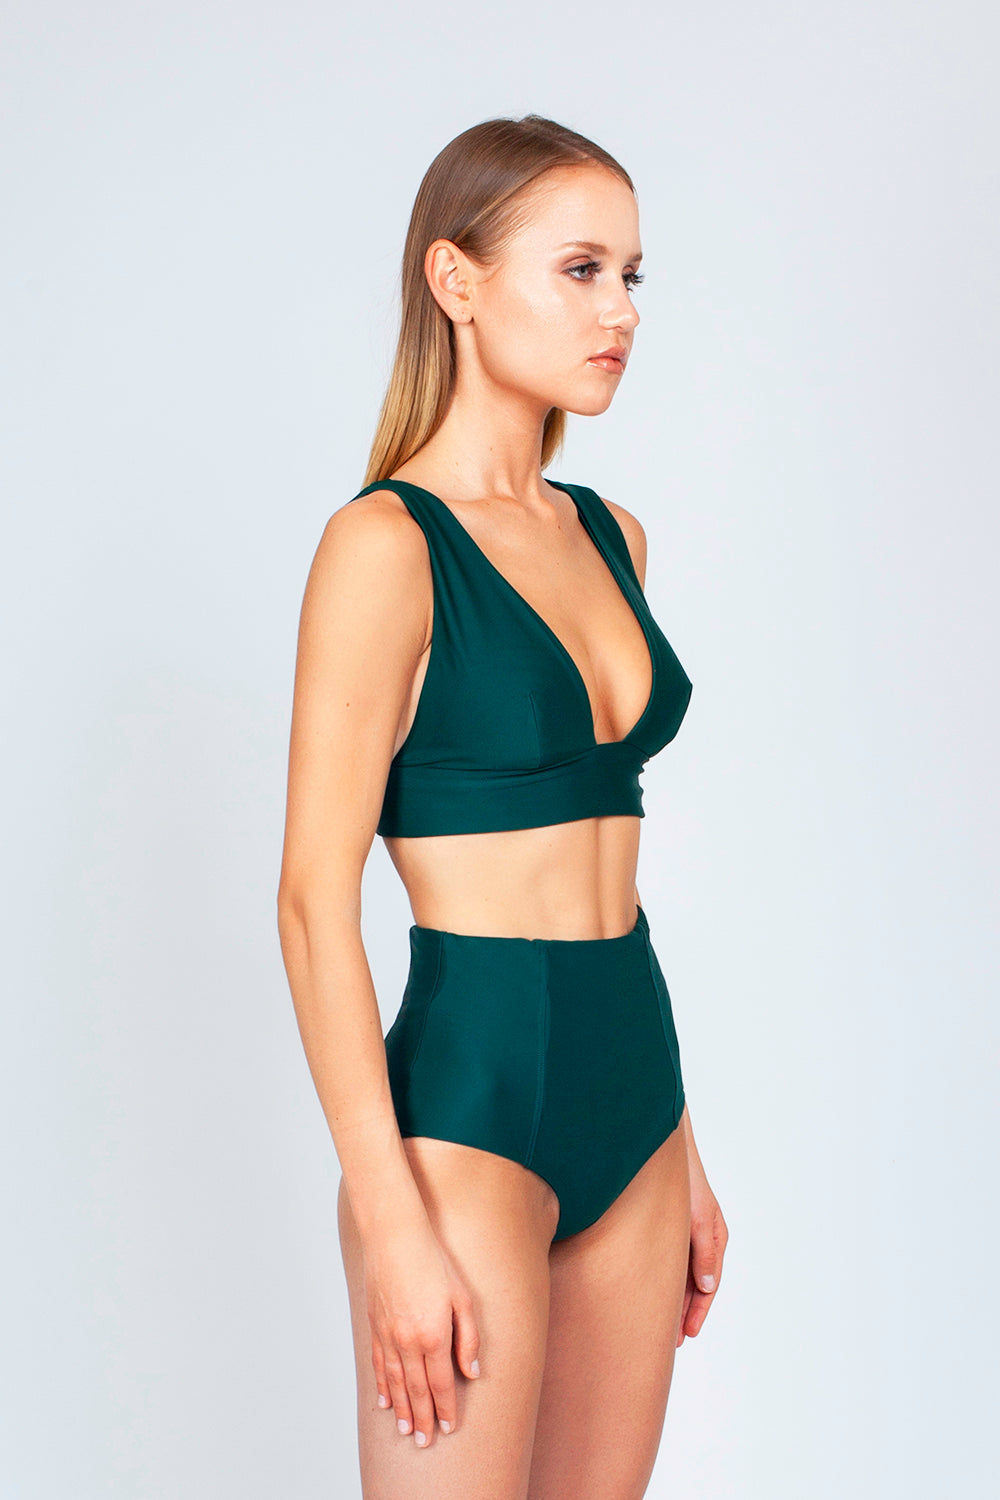 THE ONES WHO Dive Long Triangle Bikini Top - Emerald Green Bikini Top | Emerald Green| The Ones Who Dive Long Triangle Bikini Top - Emerald Green Long triangle top  V neckline  Thick bra band  V Back  Pull over  Made in LA  Fabric: 80% Nylon 20% Elastane Side View